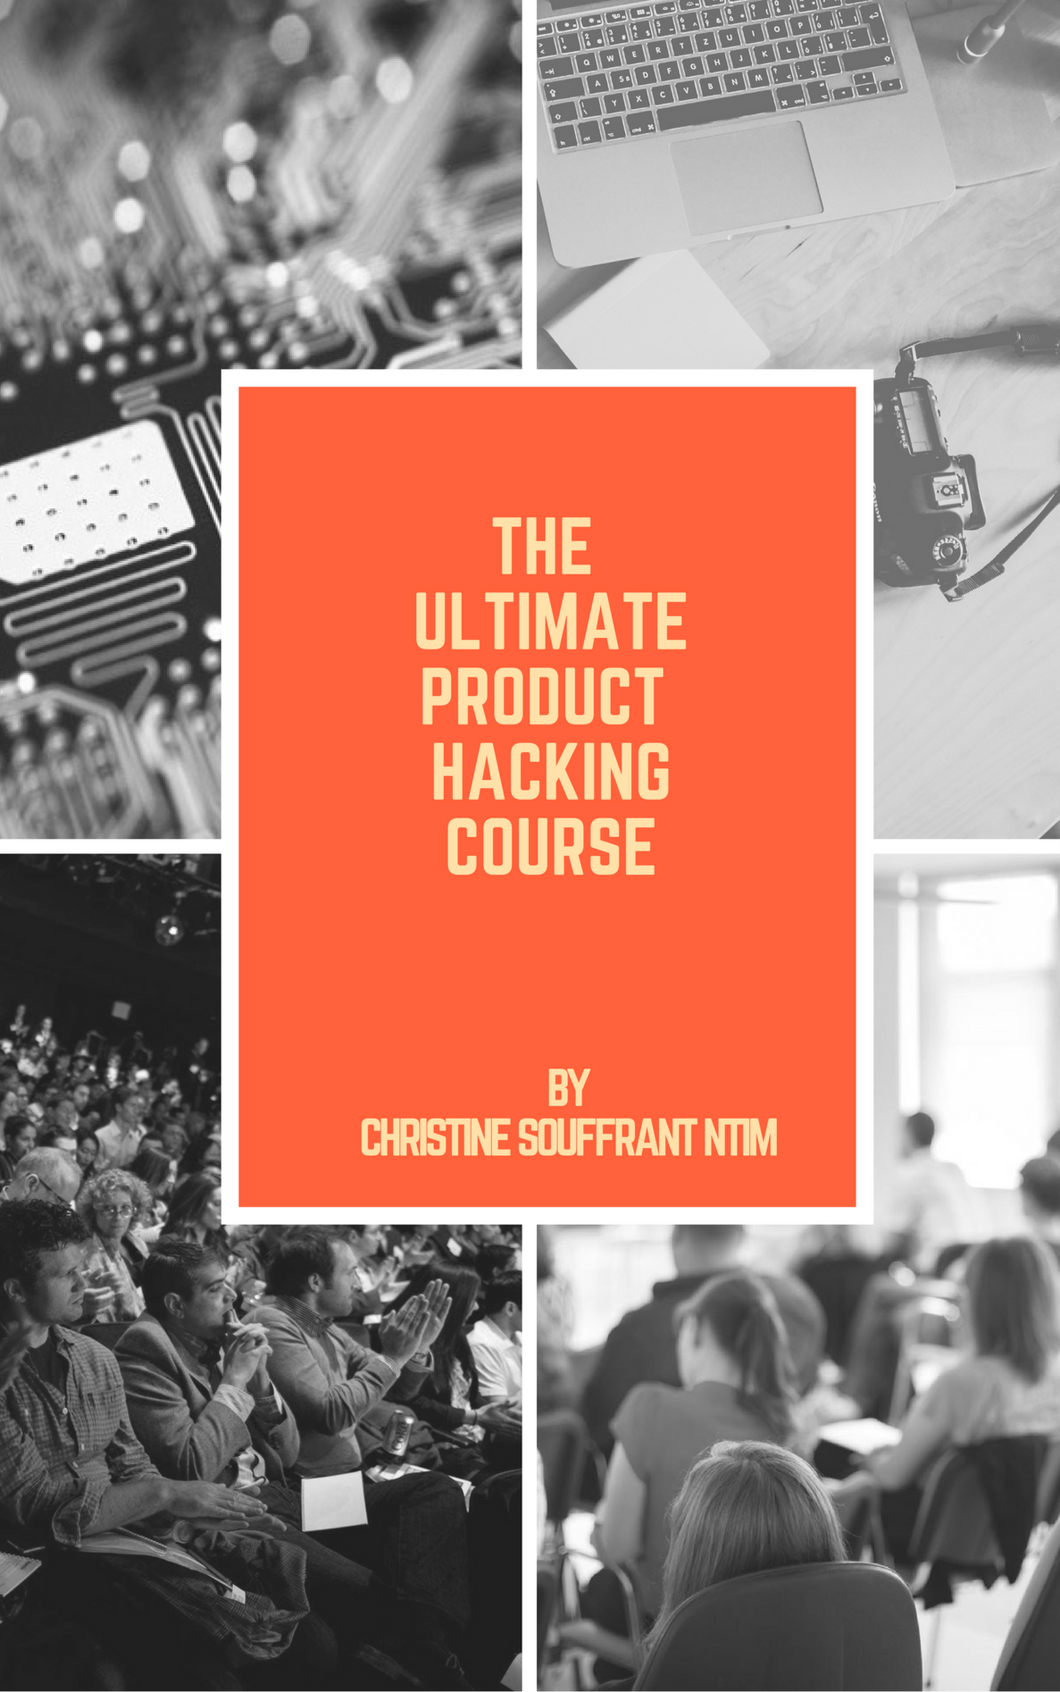 The Ultimate Product Hacking Course